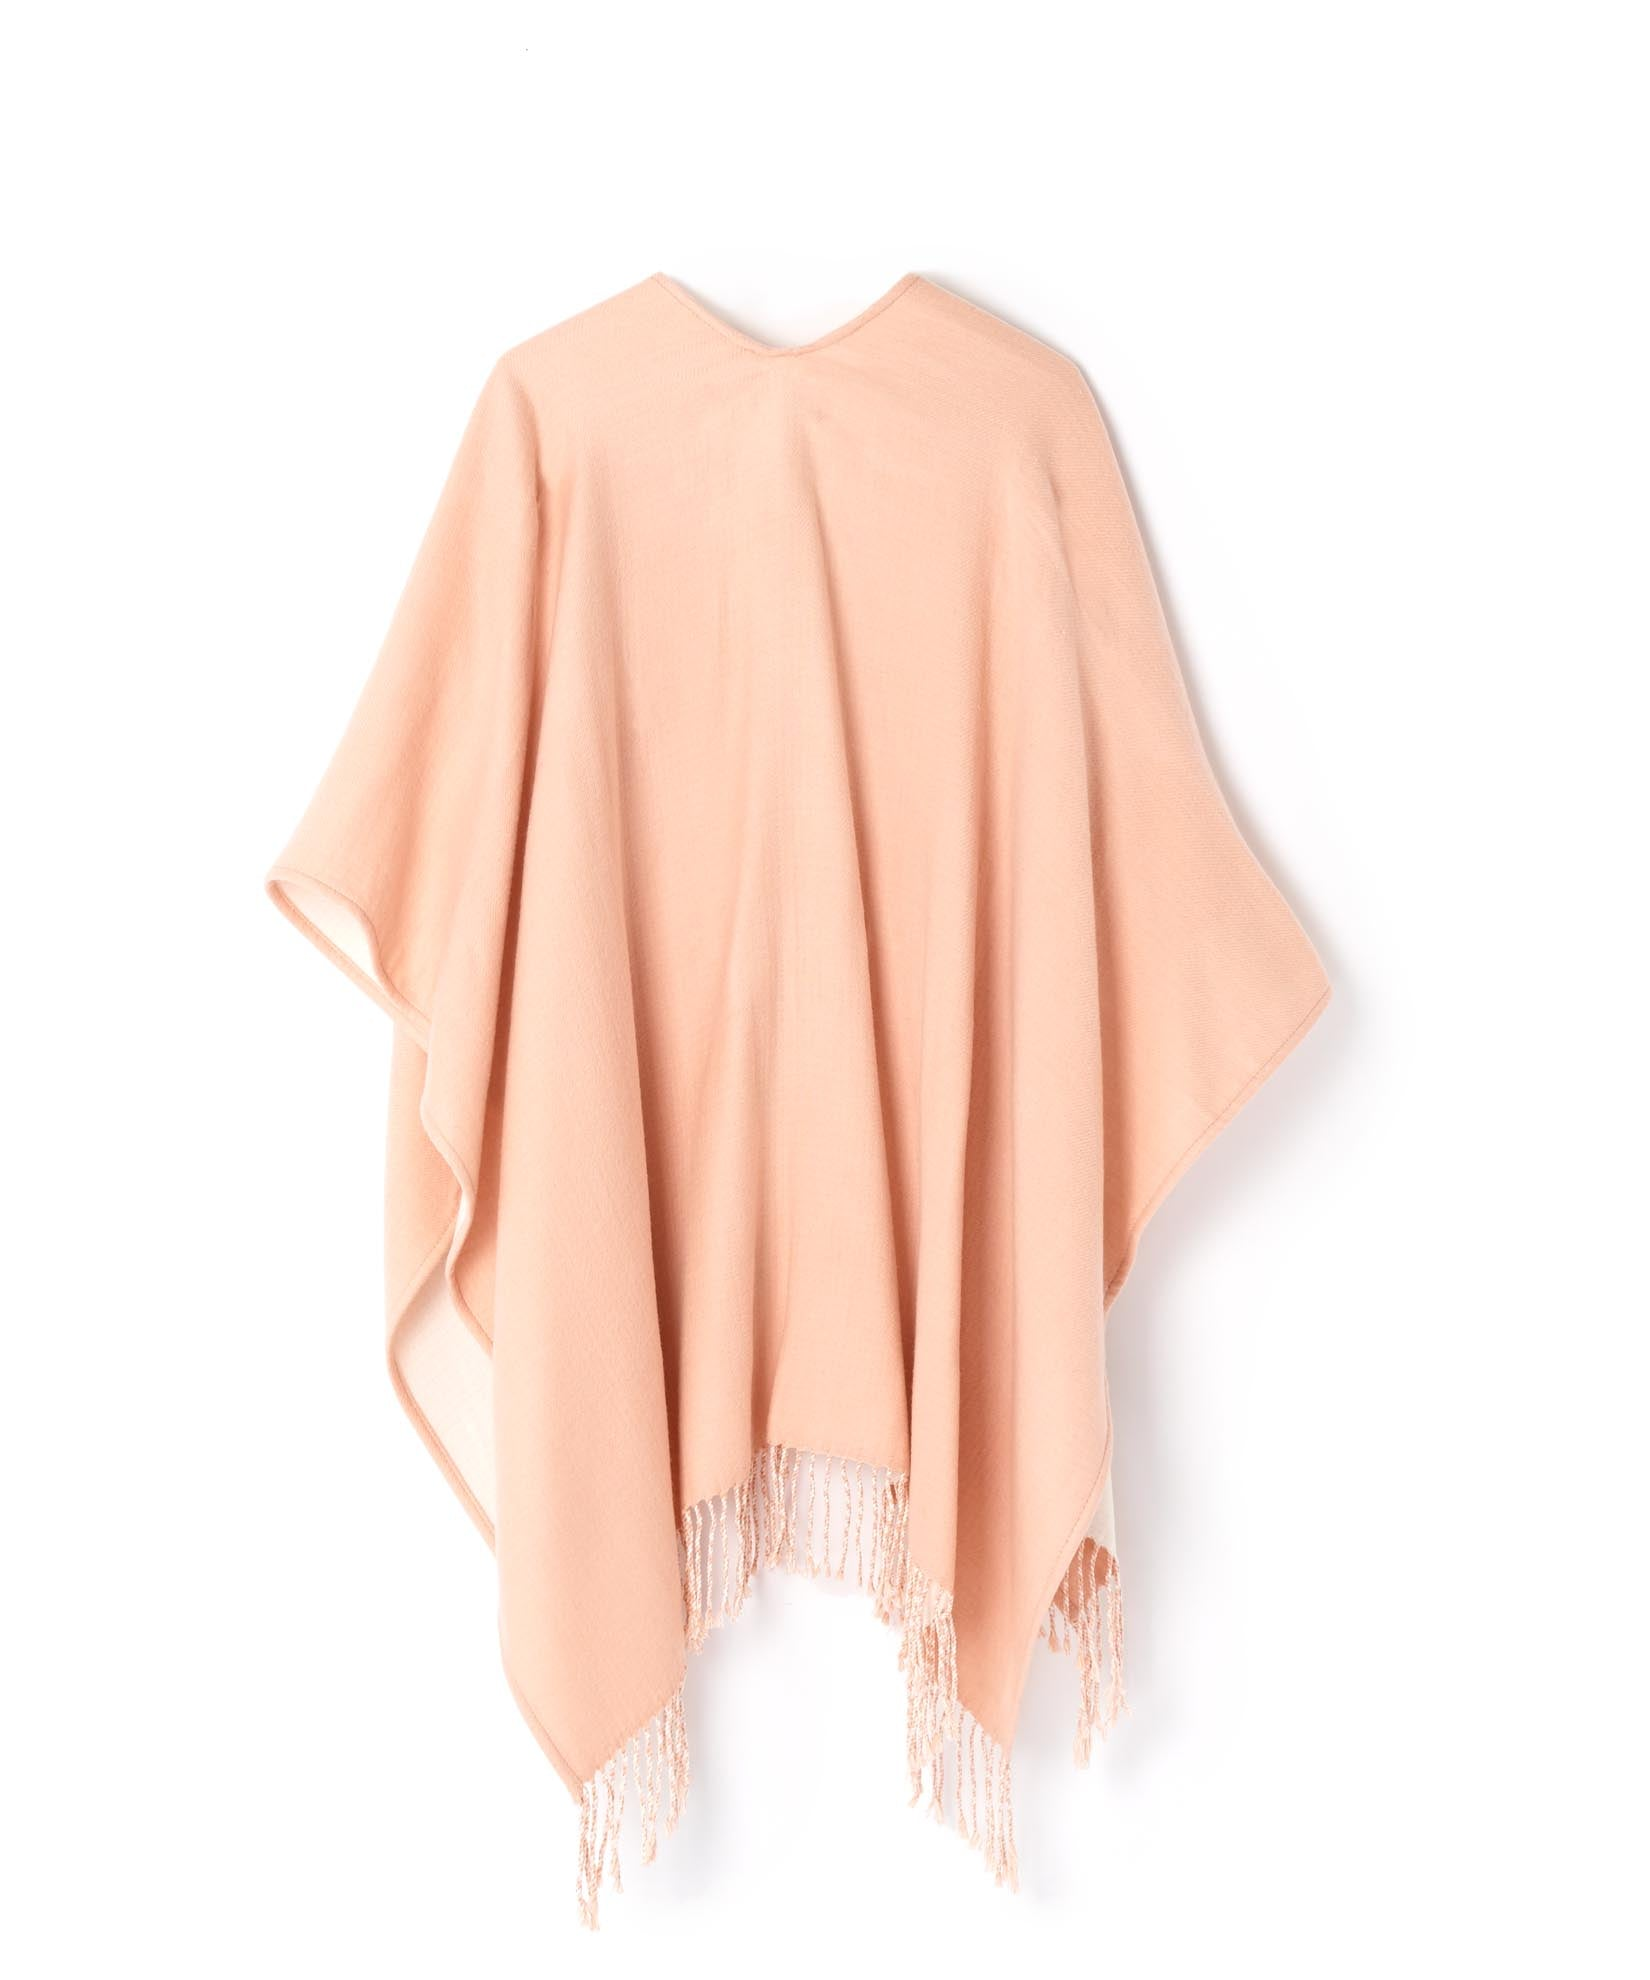 Blush - Reversible Modal Ruana